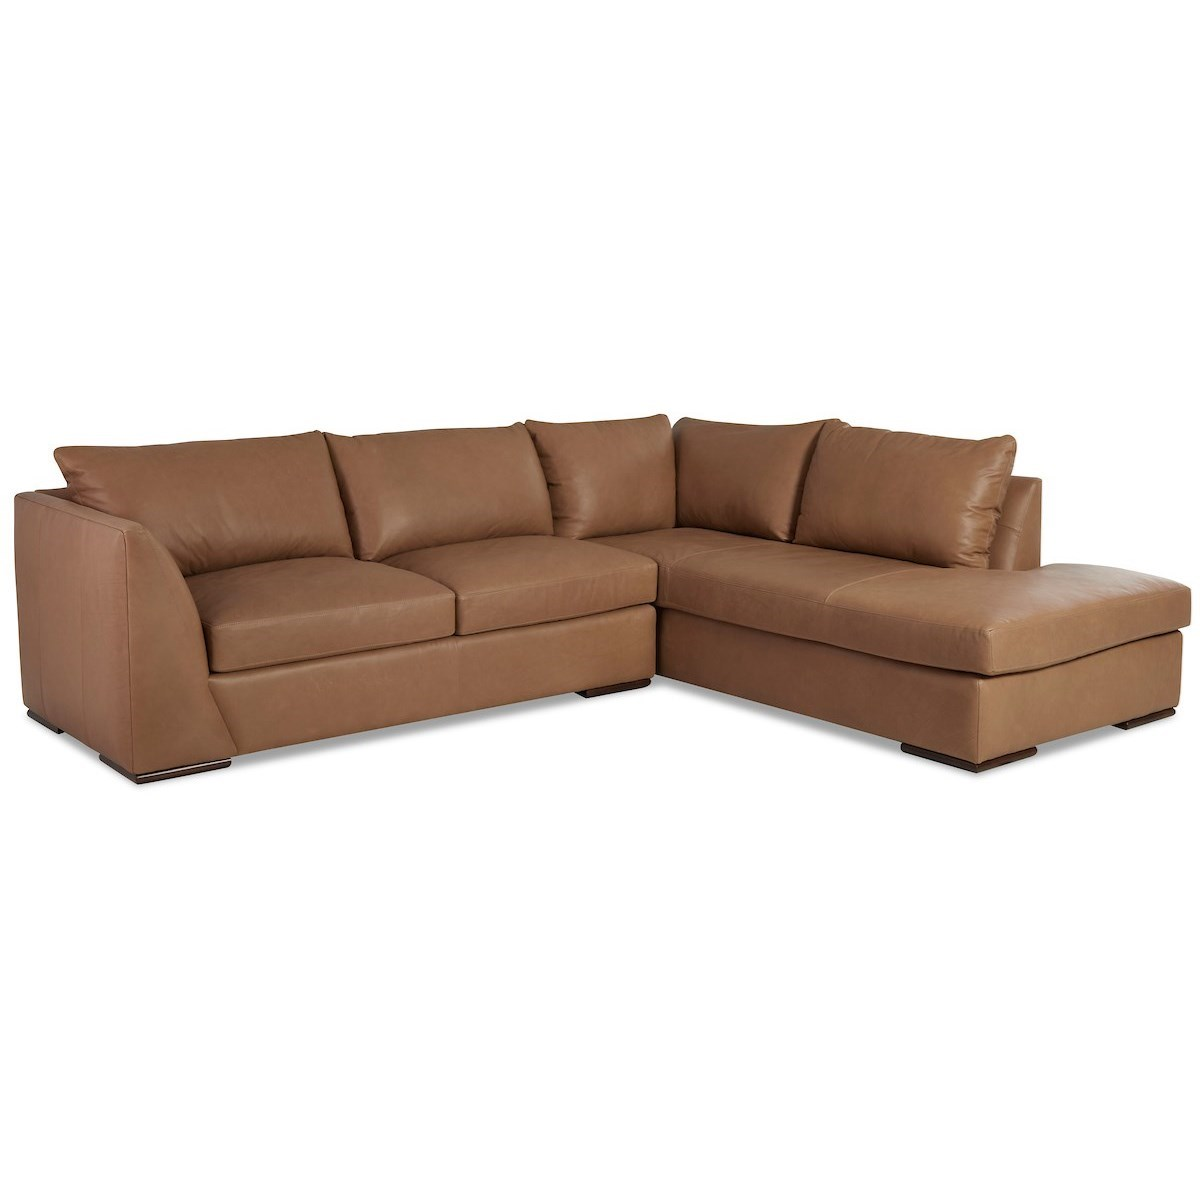 Flagler 2-Piece Sectional Sofa w/ RAF Sofa Chaise by Klaussner at Johnny Janosik